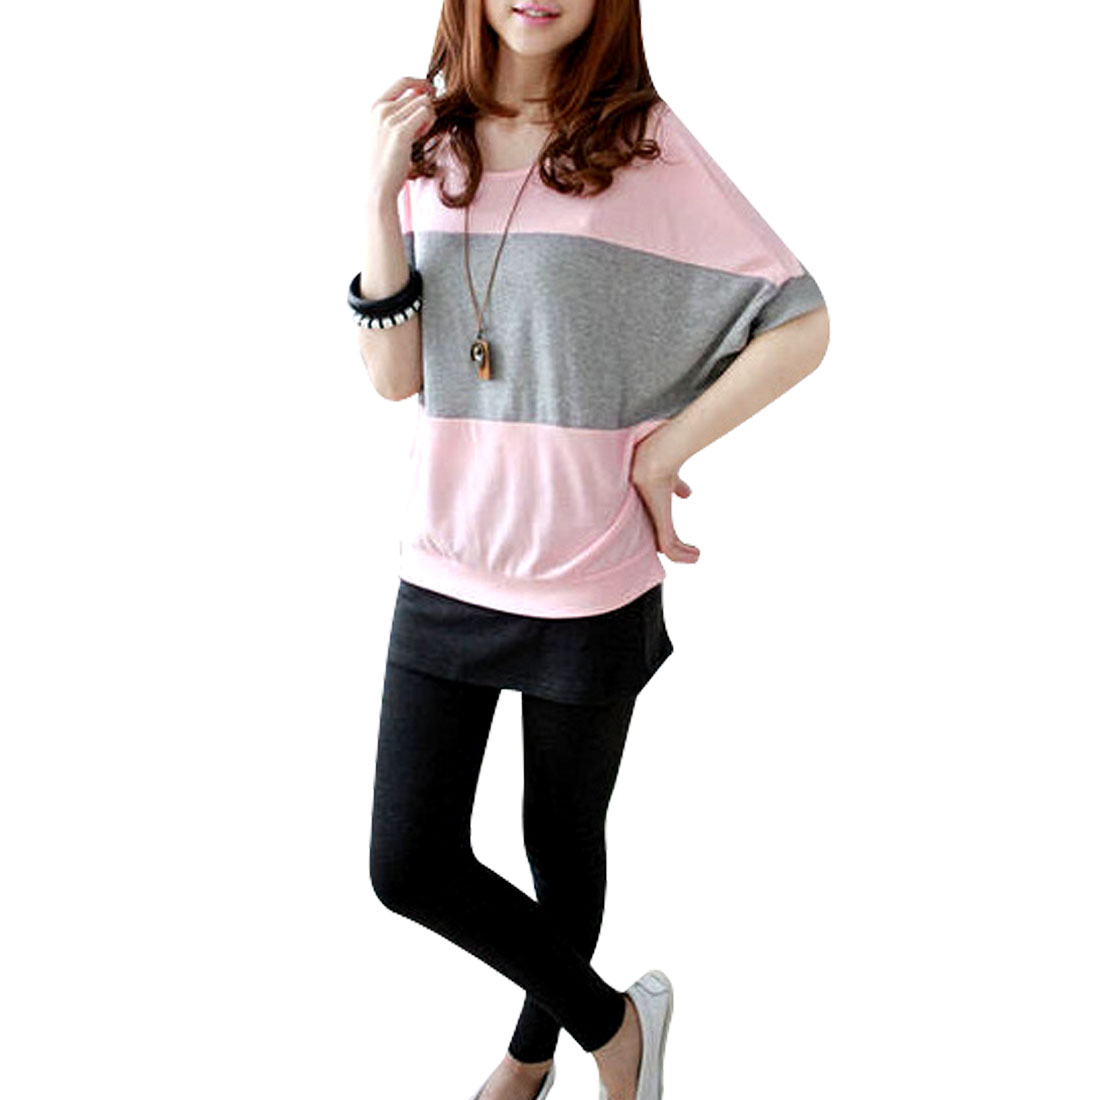 Round Neck Summer Leisure Pink Gray Spliced Top T-Shirt M for Woman